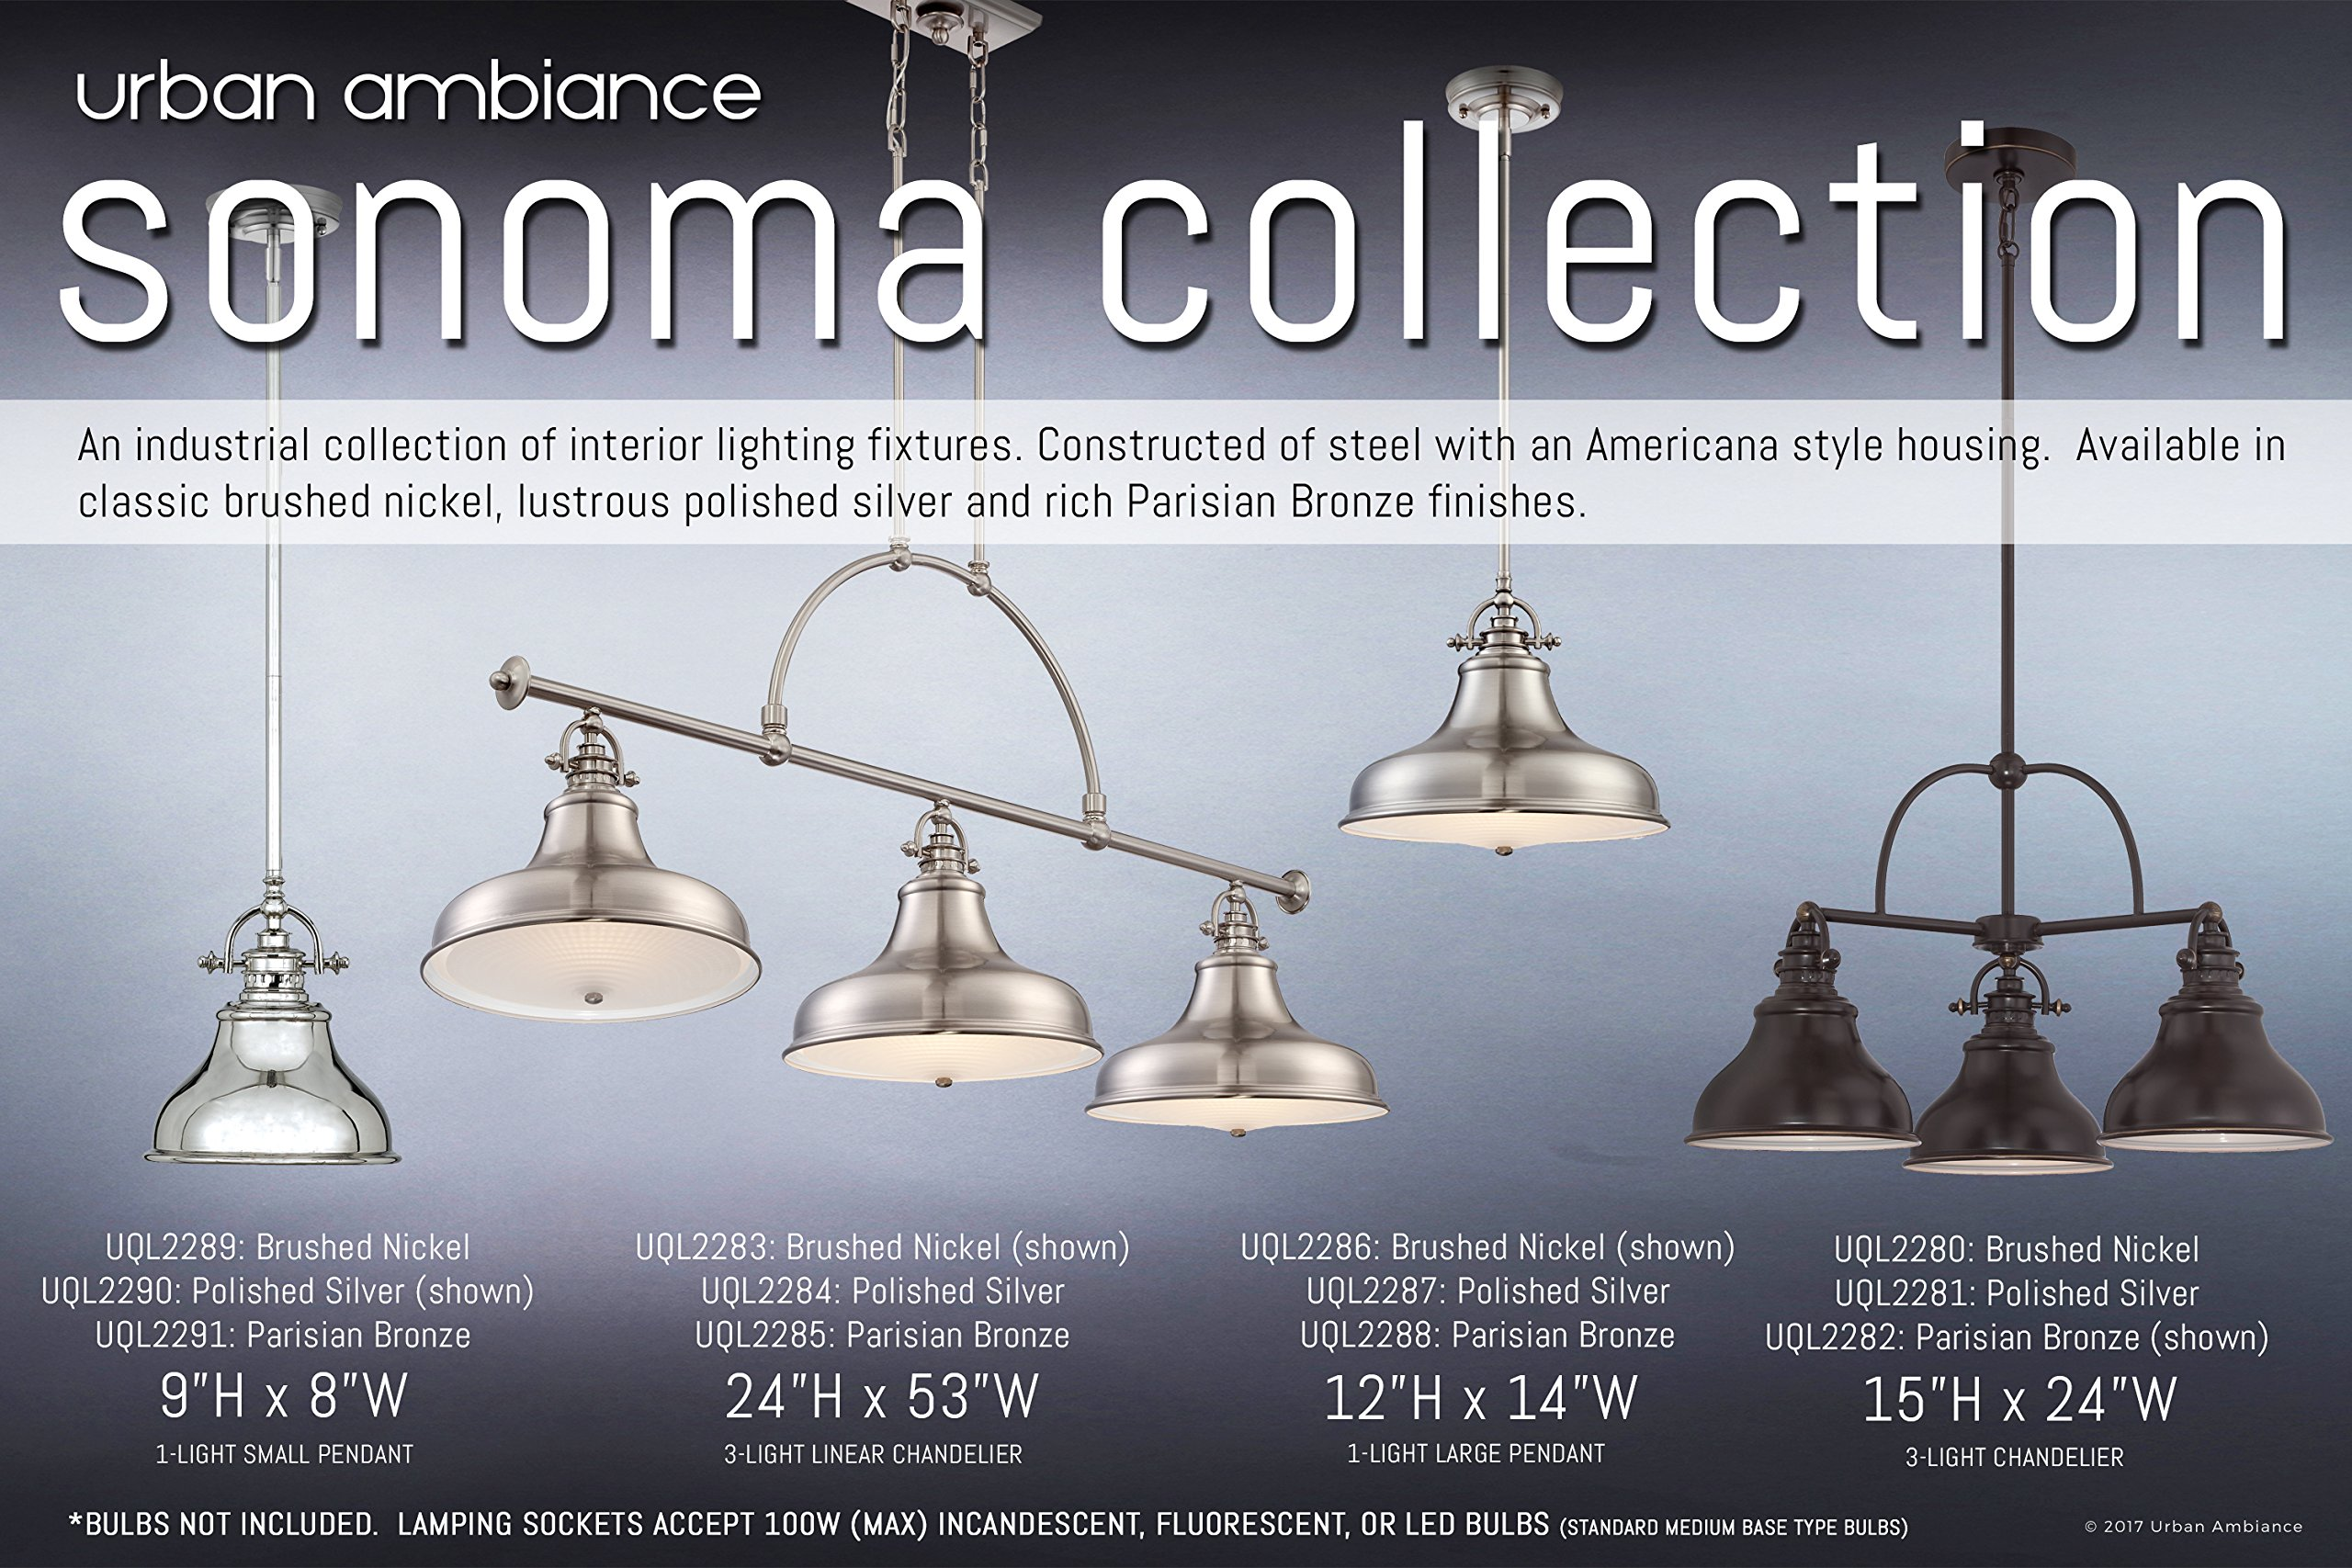 Luxury Industrial Hanging Pendant Light, Small Size: 9''H x 8''W, with Americana Style Elements, Nostalgic Design, Pretty Brushed Nickel Finish and Steel Shade, UQL2289 by Urban Ambiance